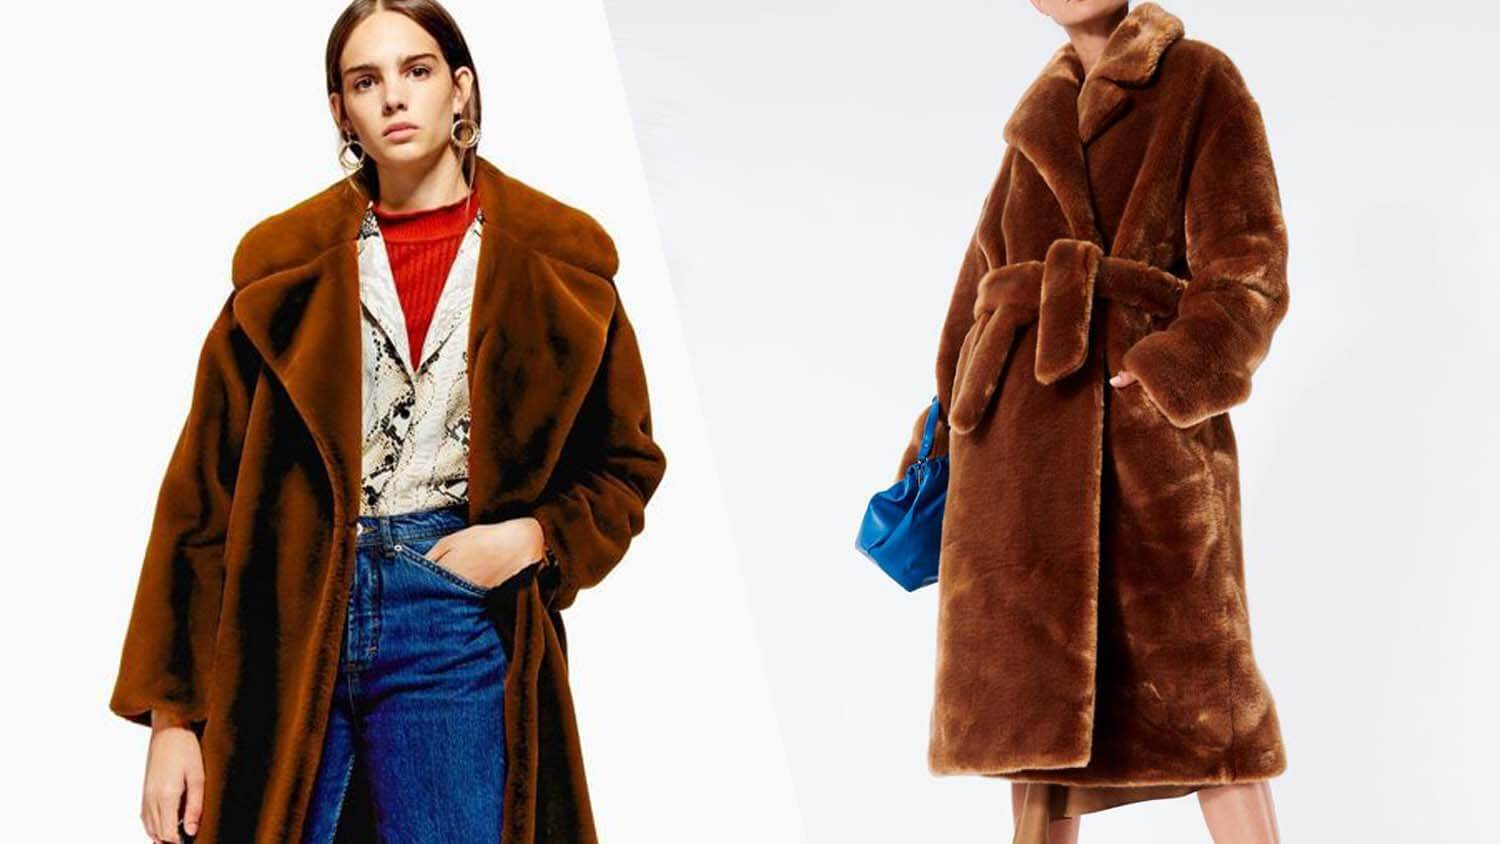 Topshop Launches Cruelty-Free Designer-Quality Faux Fur Coats